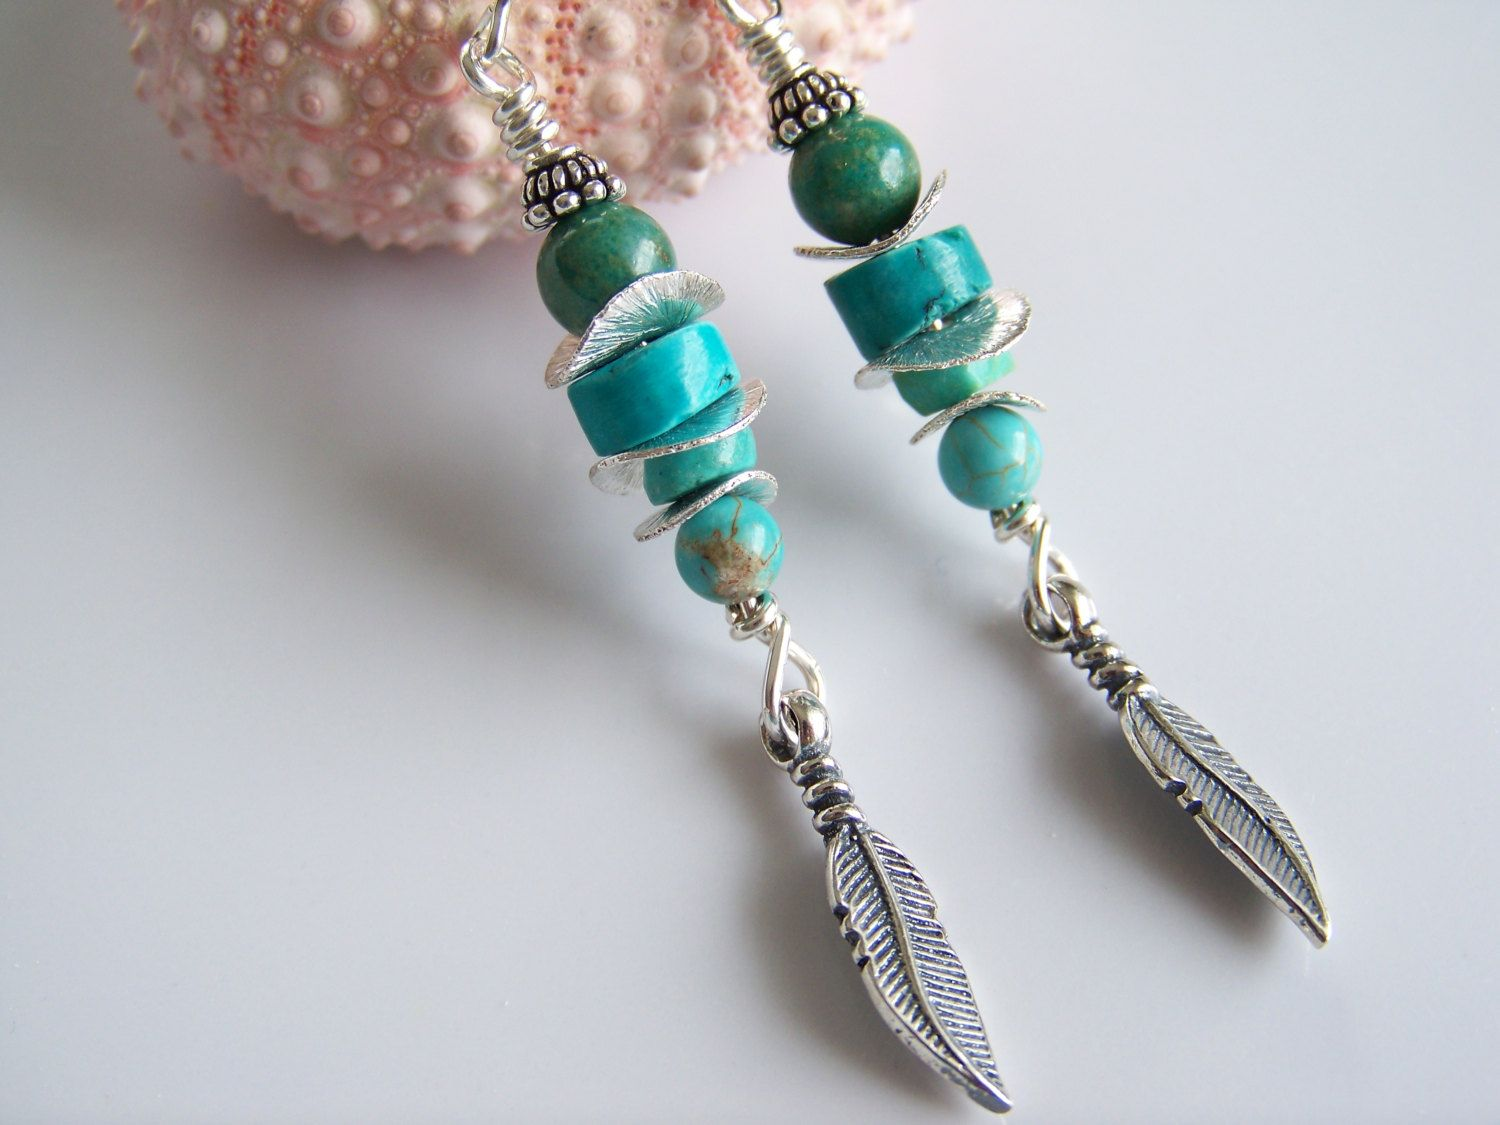 Turquoise Gemstone and Silver Feather Boho Earrings - Item E1949 by Joannsfortheluvofit on Etsy